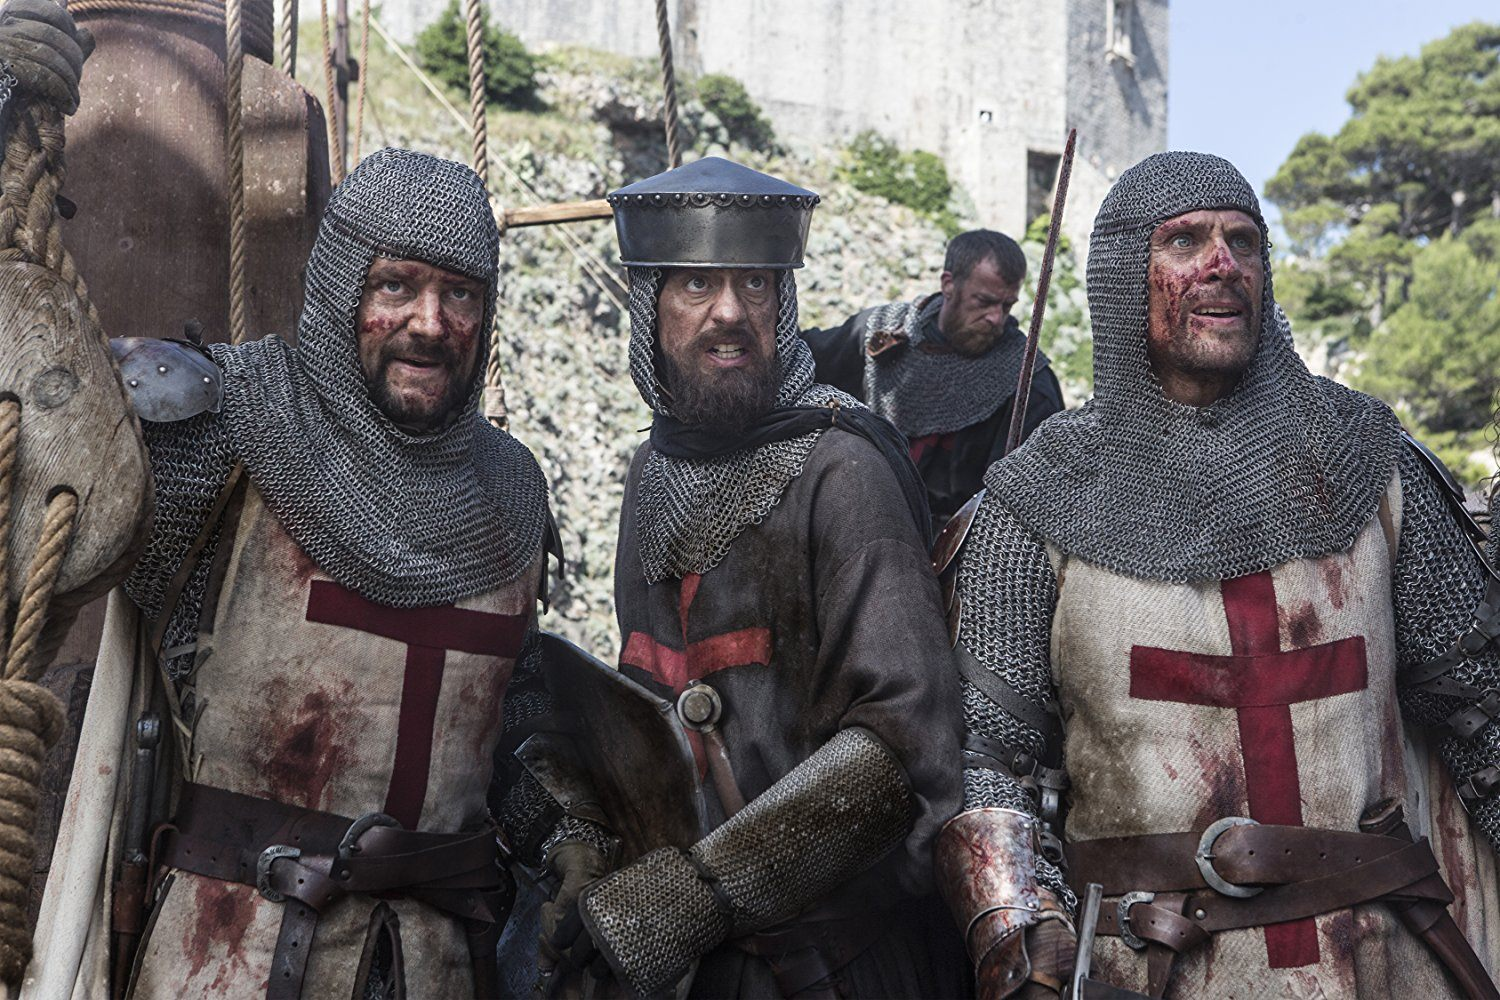 The Knights of Templar in Knightfall